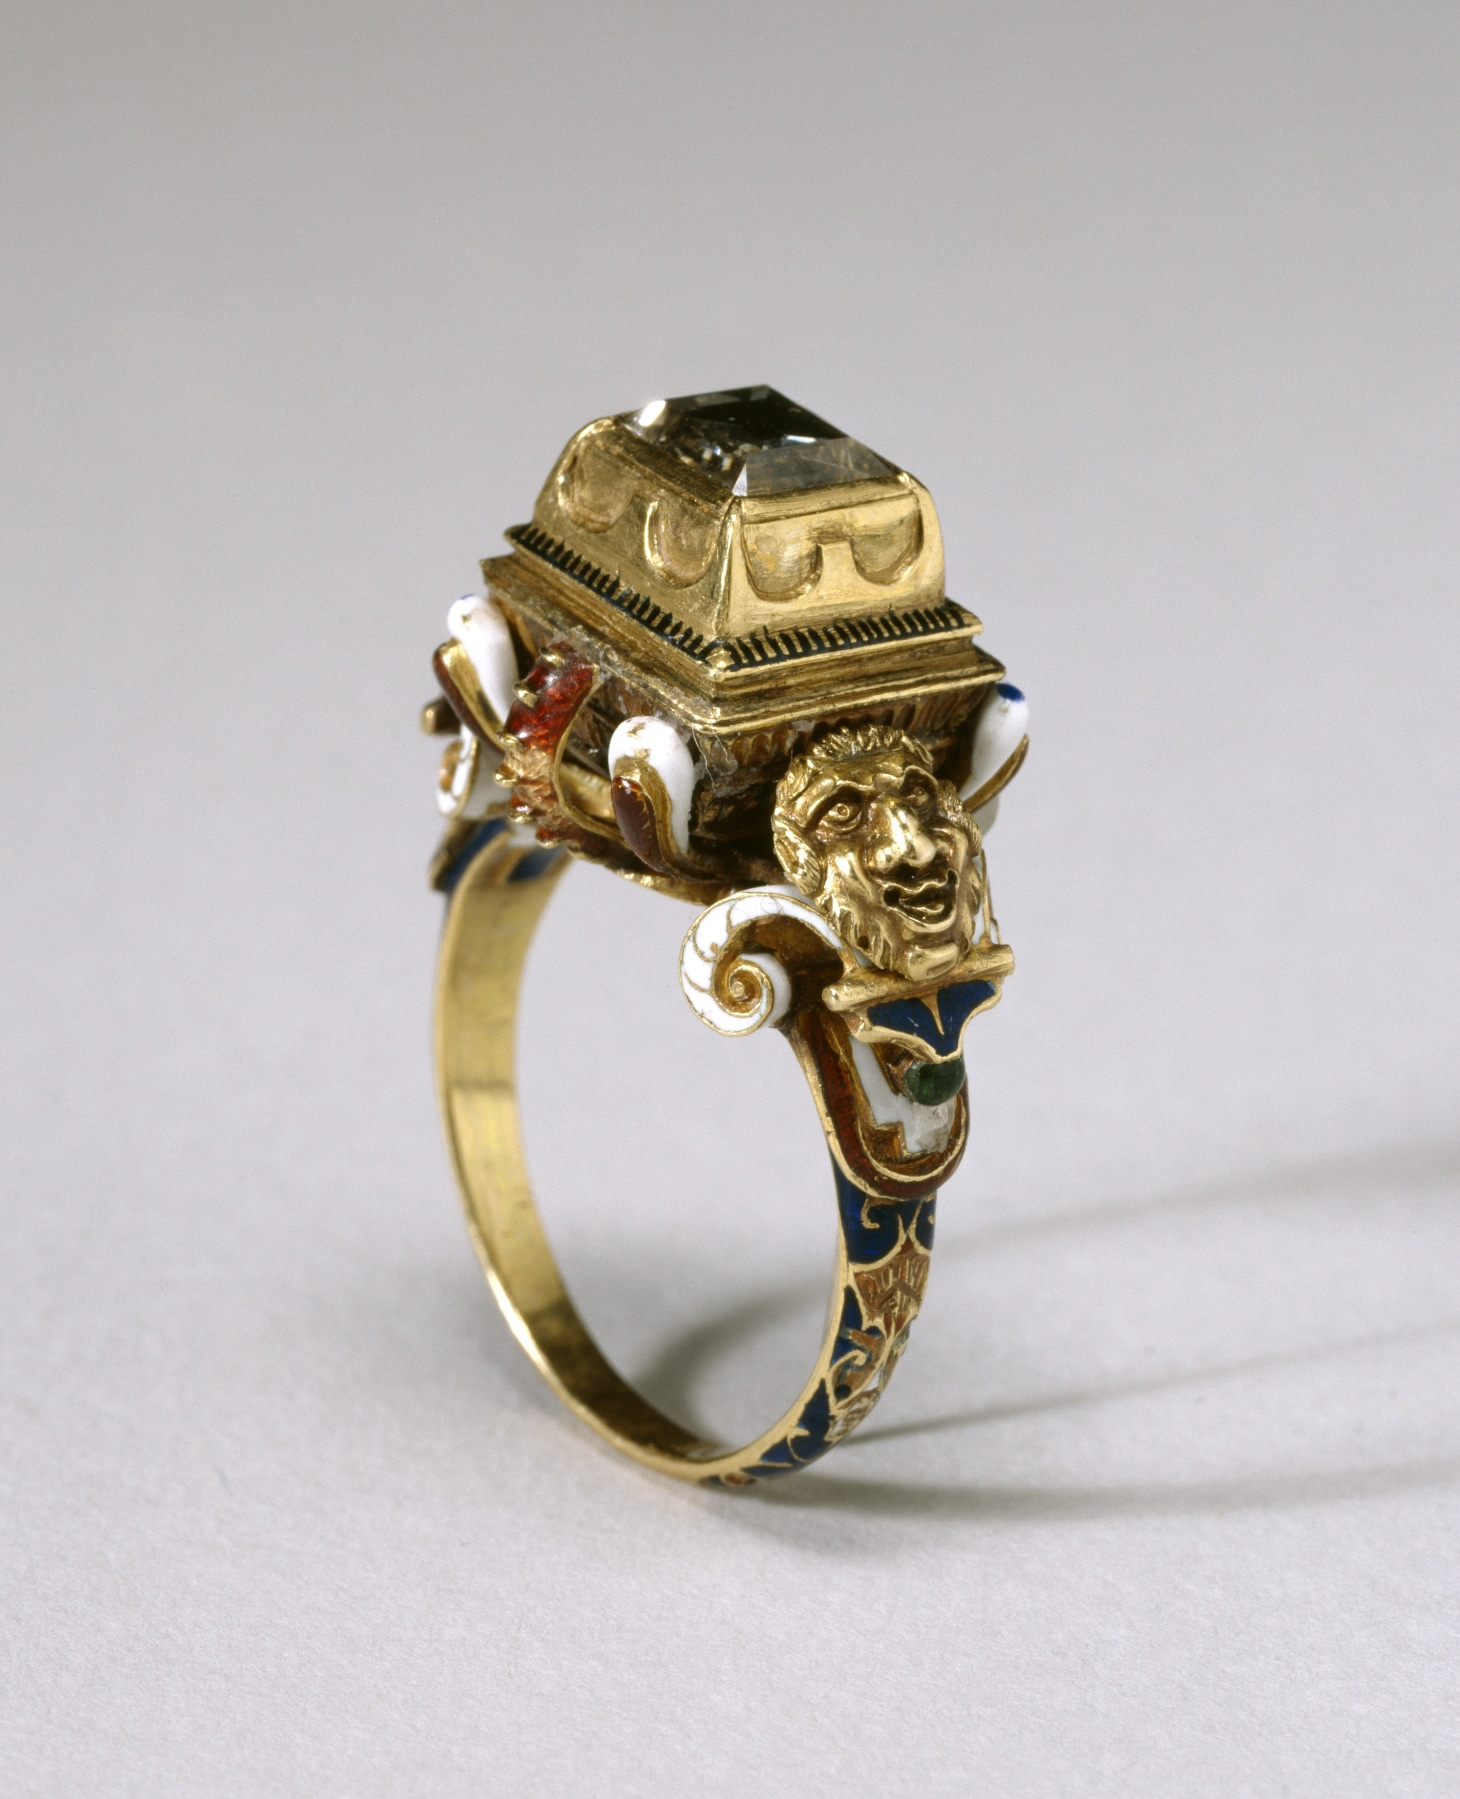 16th century diamond ring